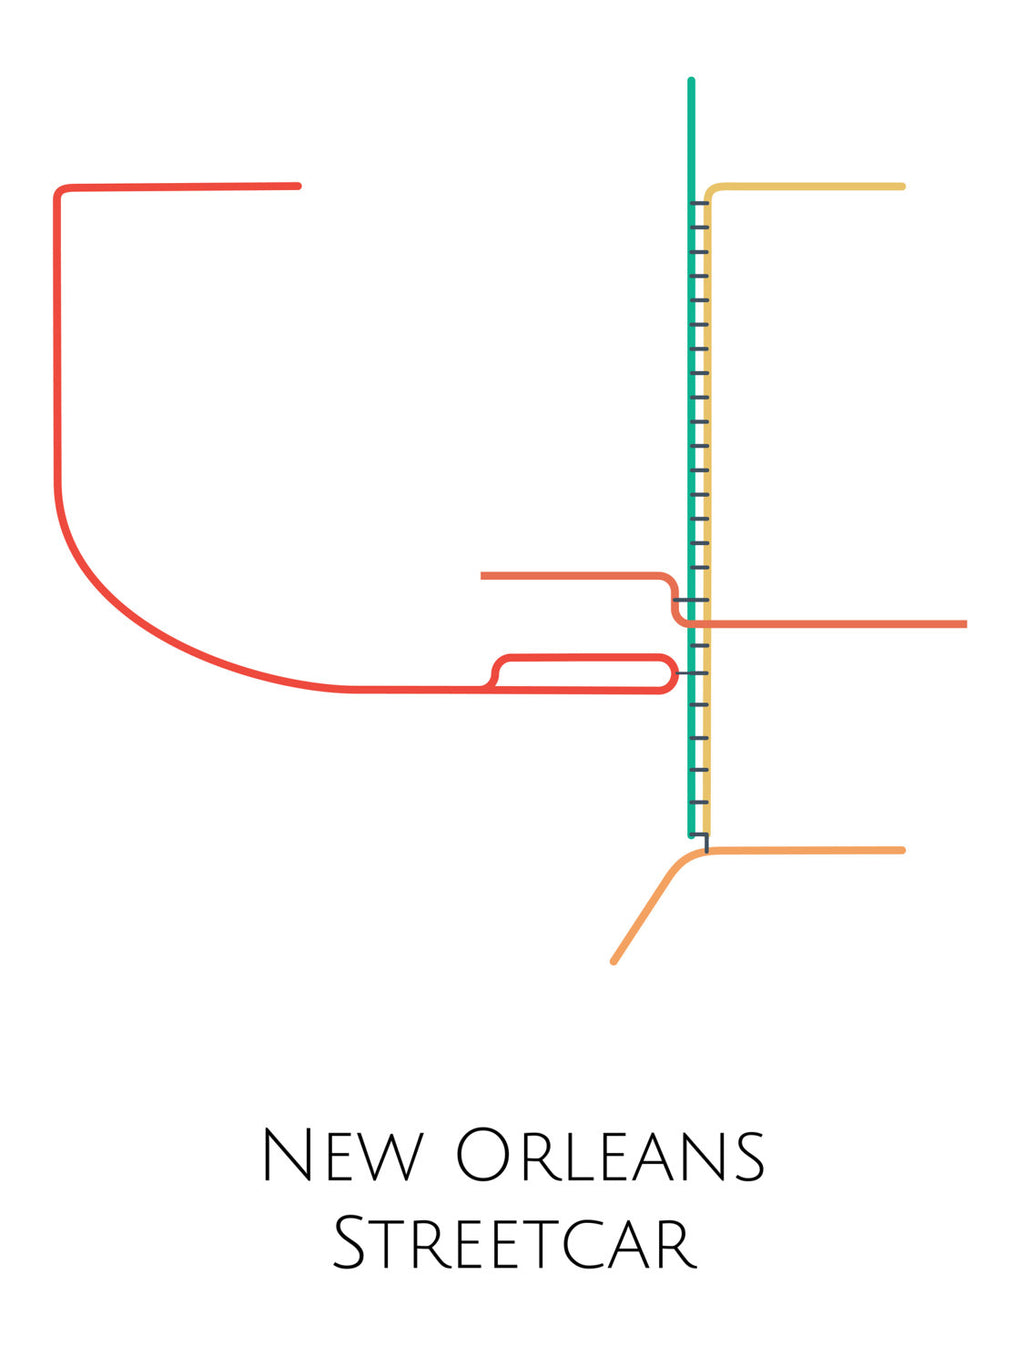 New Orleans Map, New Orleans Streetcar Map, NOLA, New Orleans Print, Mardi Gras Streetcar, New Orleans Art, New Orleans Poster - ParMar Media